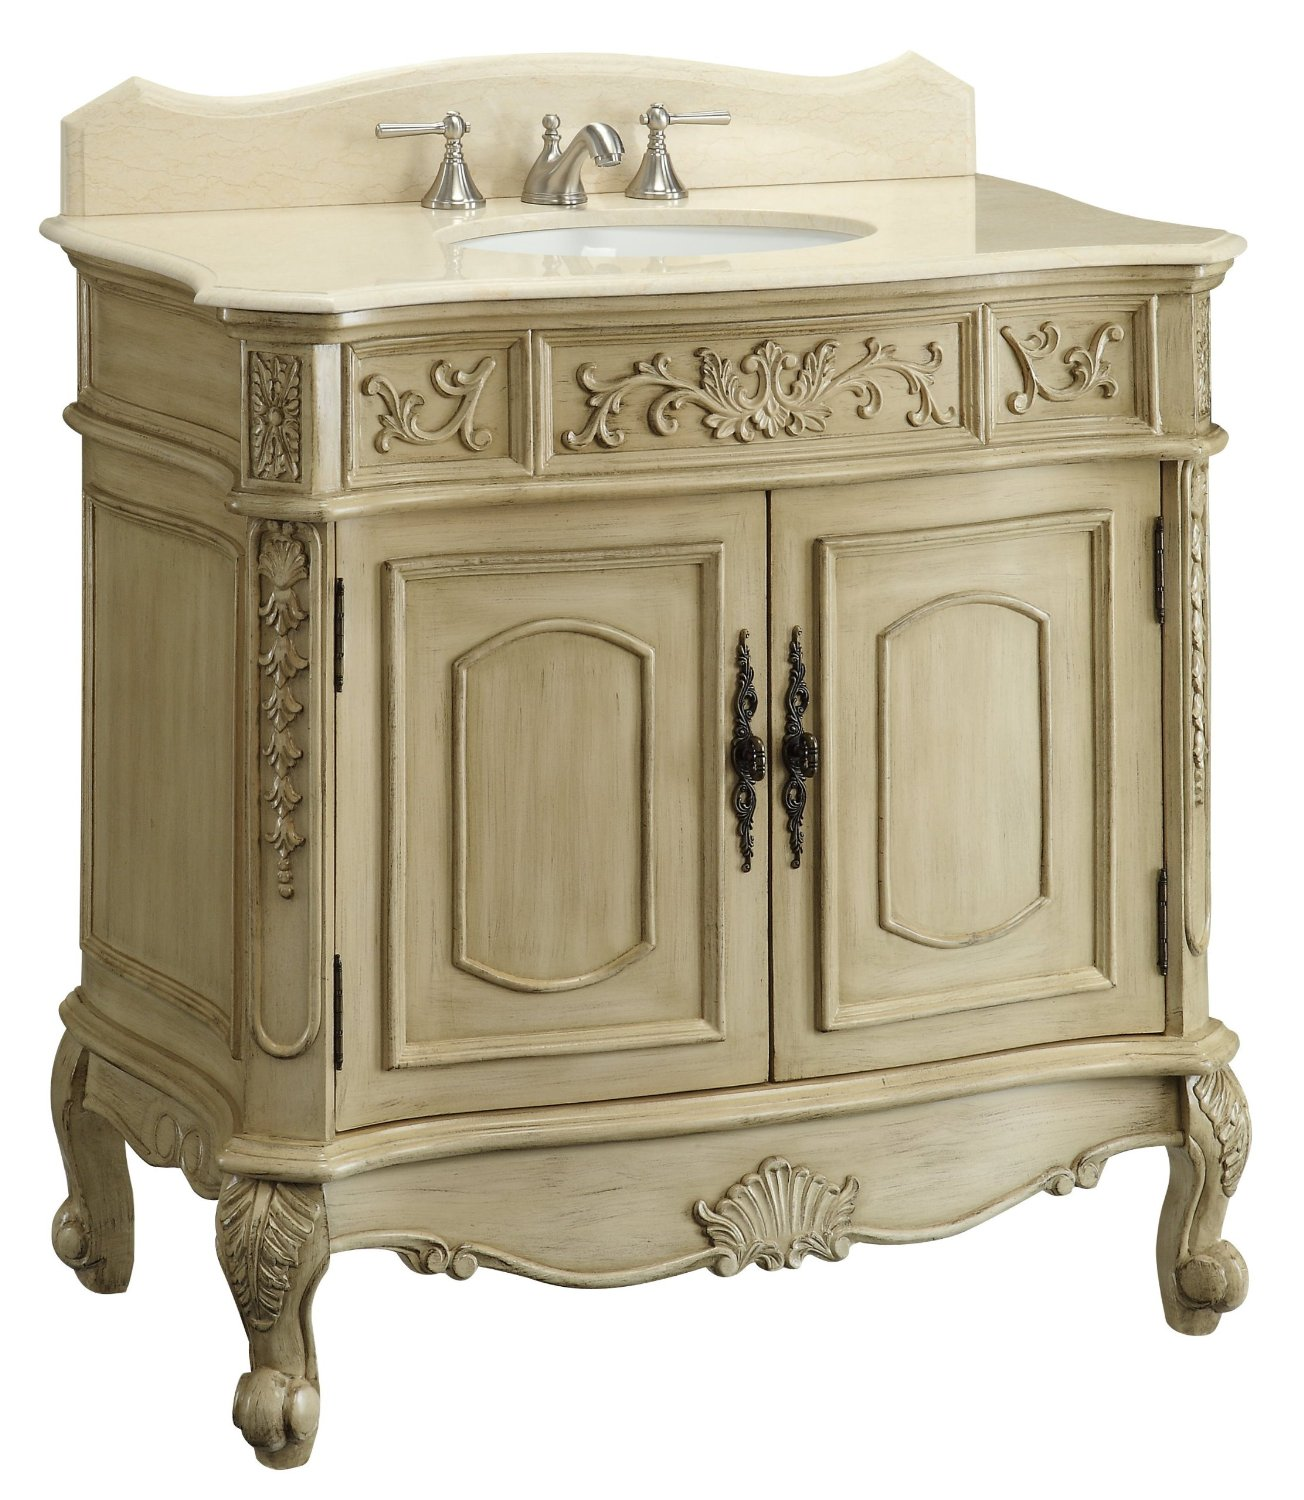 Adelina 37 Inch Unique Antique Bathroom Vanity White Marble Counter Top